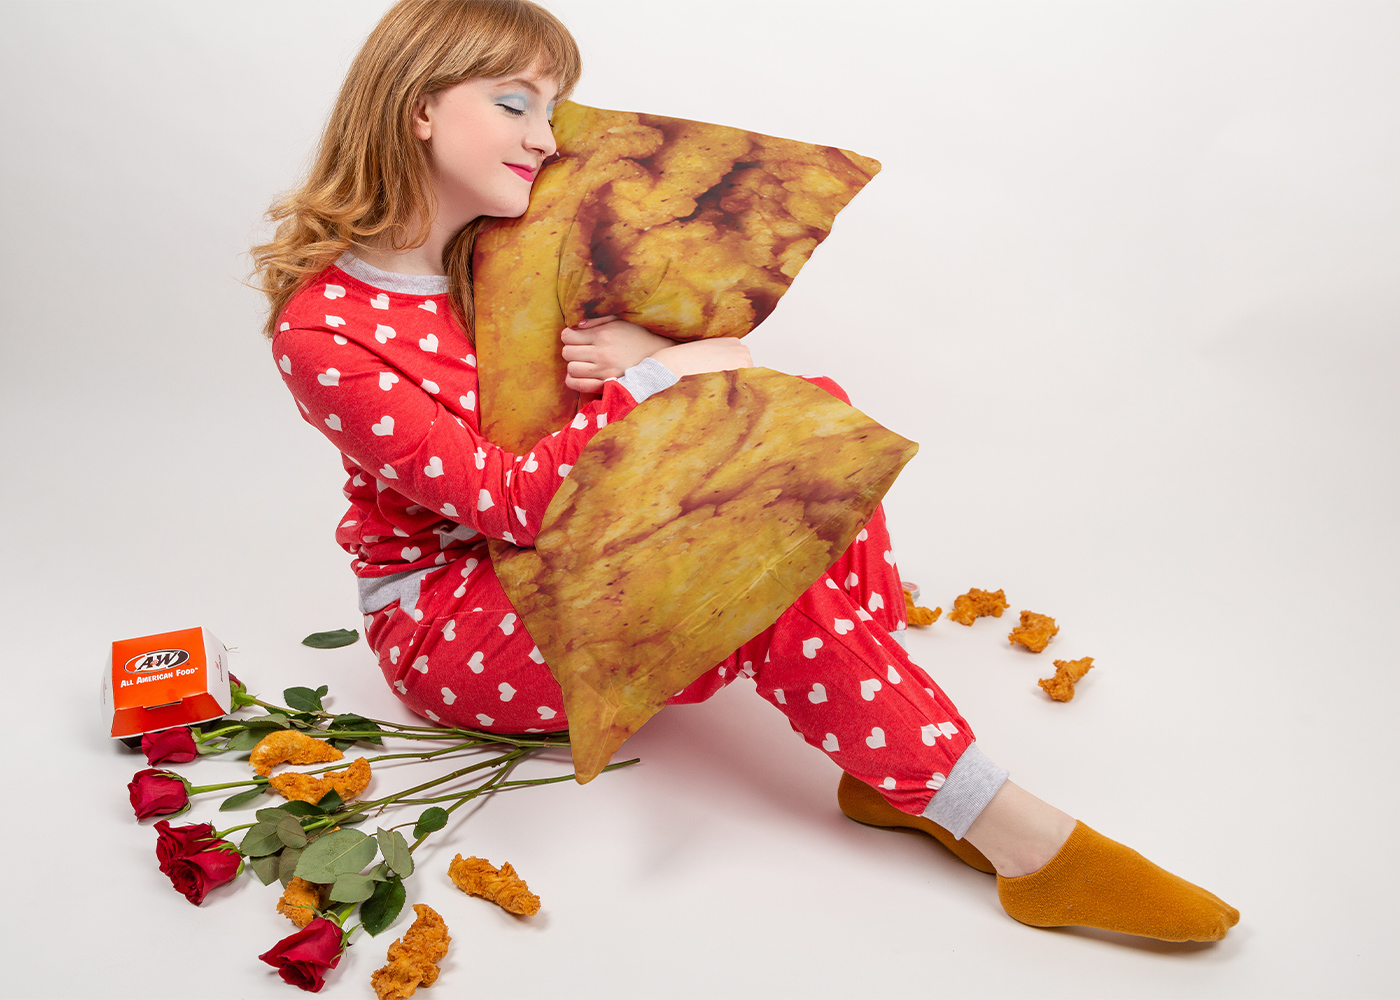 Girl wearing red heart pajamas is sitting on the floor. She is holding a body pillow that looks like an A&W Chicken Tender.